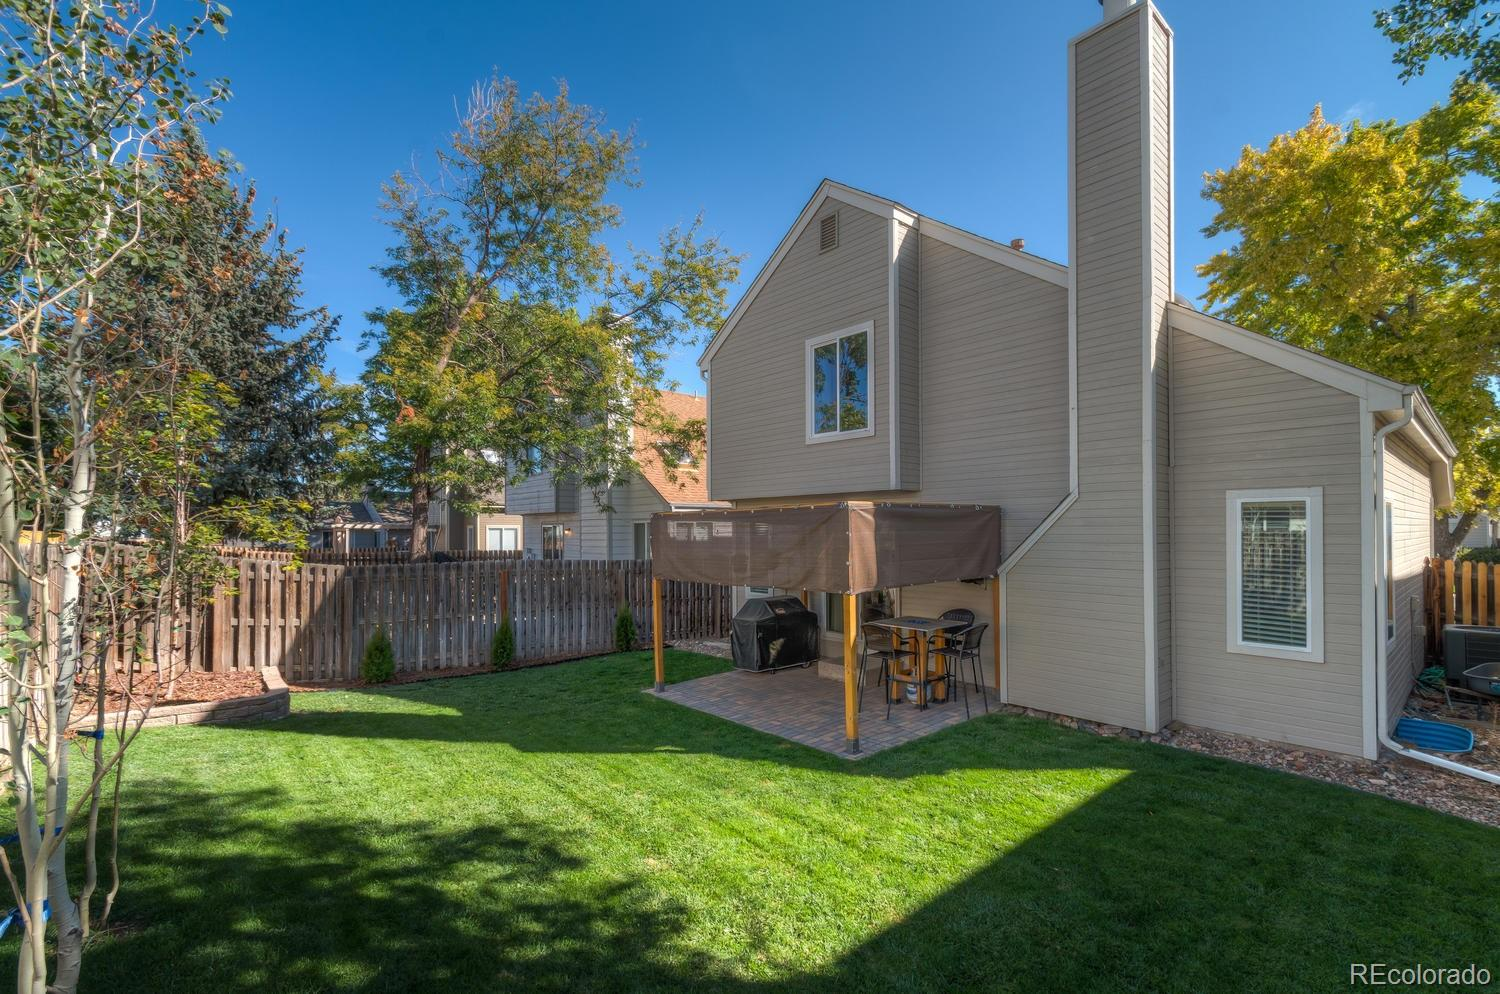 MLS# 2006537 - 26 - 5629 S Youngfield Way, Littleton, CO 80127